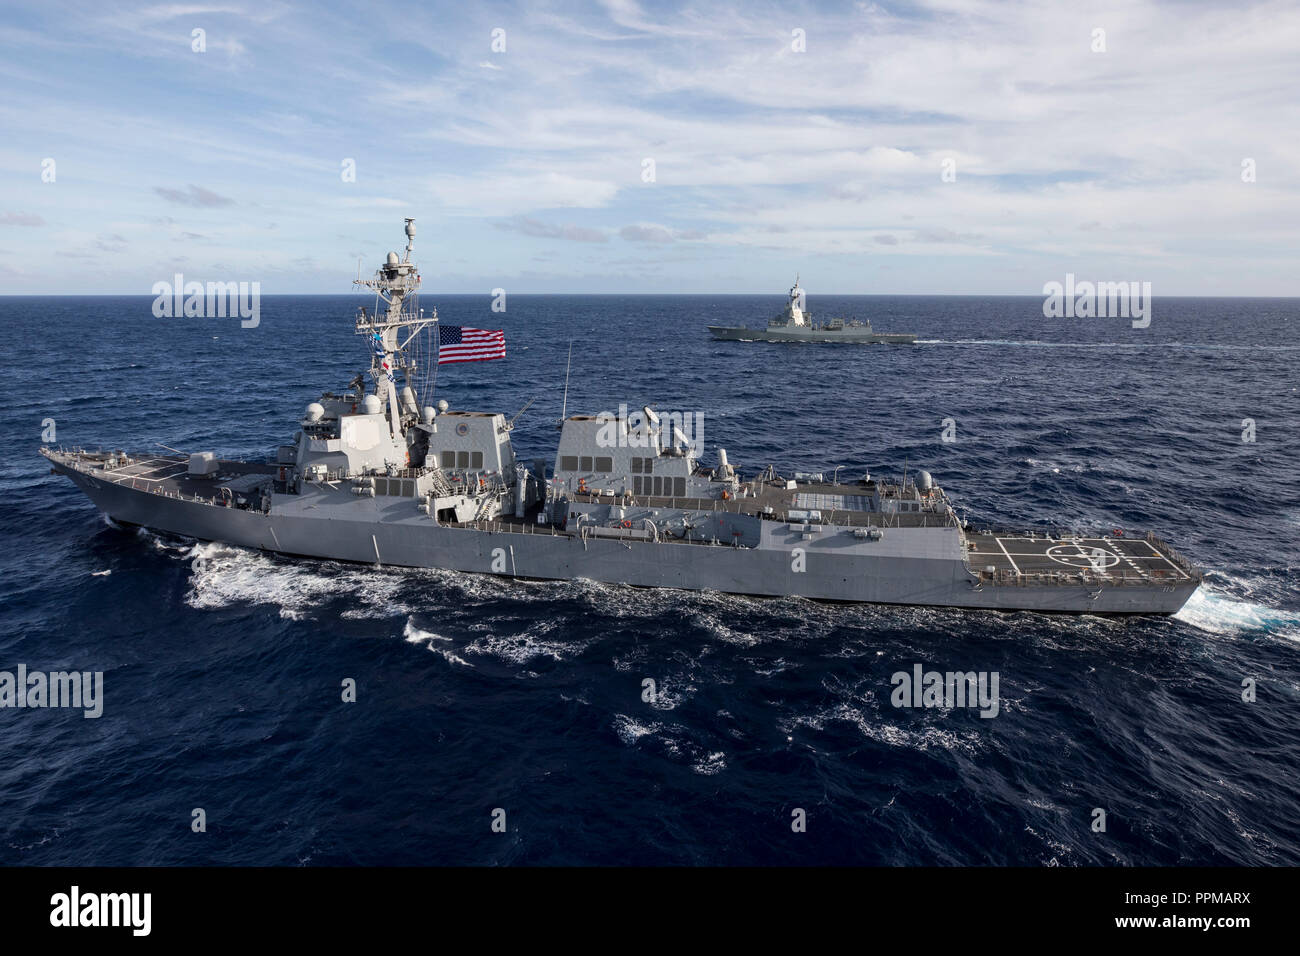 """The U.S. Navy ship USS John Finn (DDG 113) and the Royal Australian Navy ship HMAS Hobart (DDG 39), both guided missile destroyers, conduct naval formations off the coast of Oahu, Hawaii, Sept. 21, 2018. The two ships cooperated in a variety of ship maneuvers part of the """"Mateship"""" festivities to commemorate the 100 year anniversary since the two nations fought side by side in 1918 during World War I. (U.S. Marine Corps photo by Sgt. Jesus Sepulveda Torres) - Stock Image"""